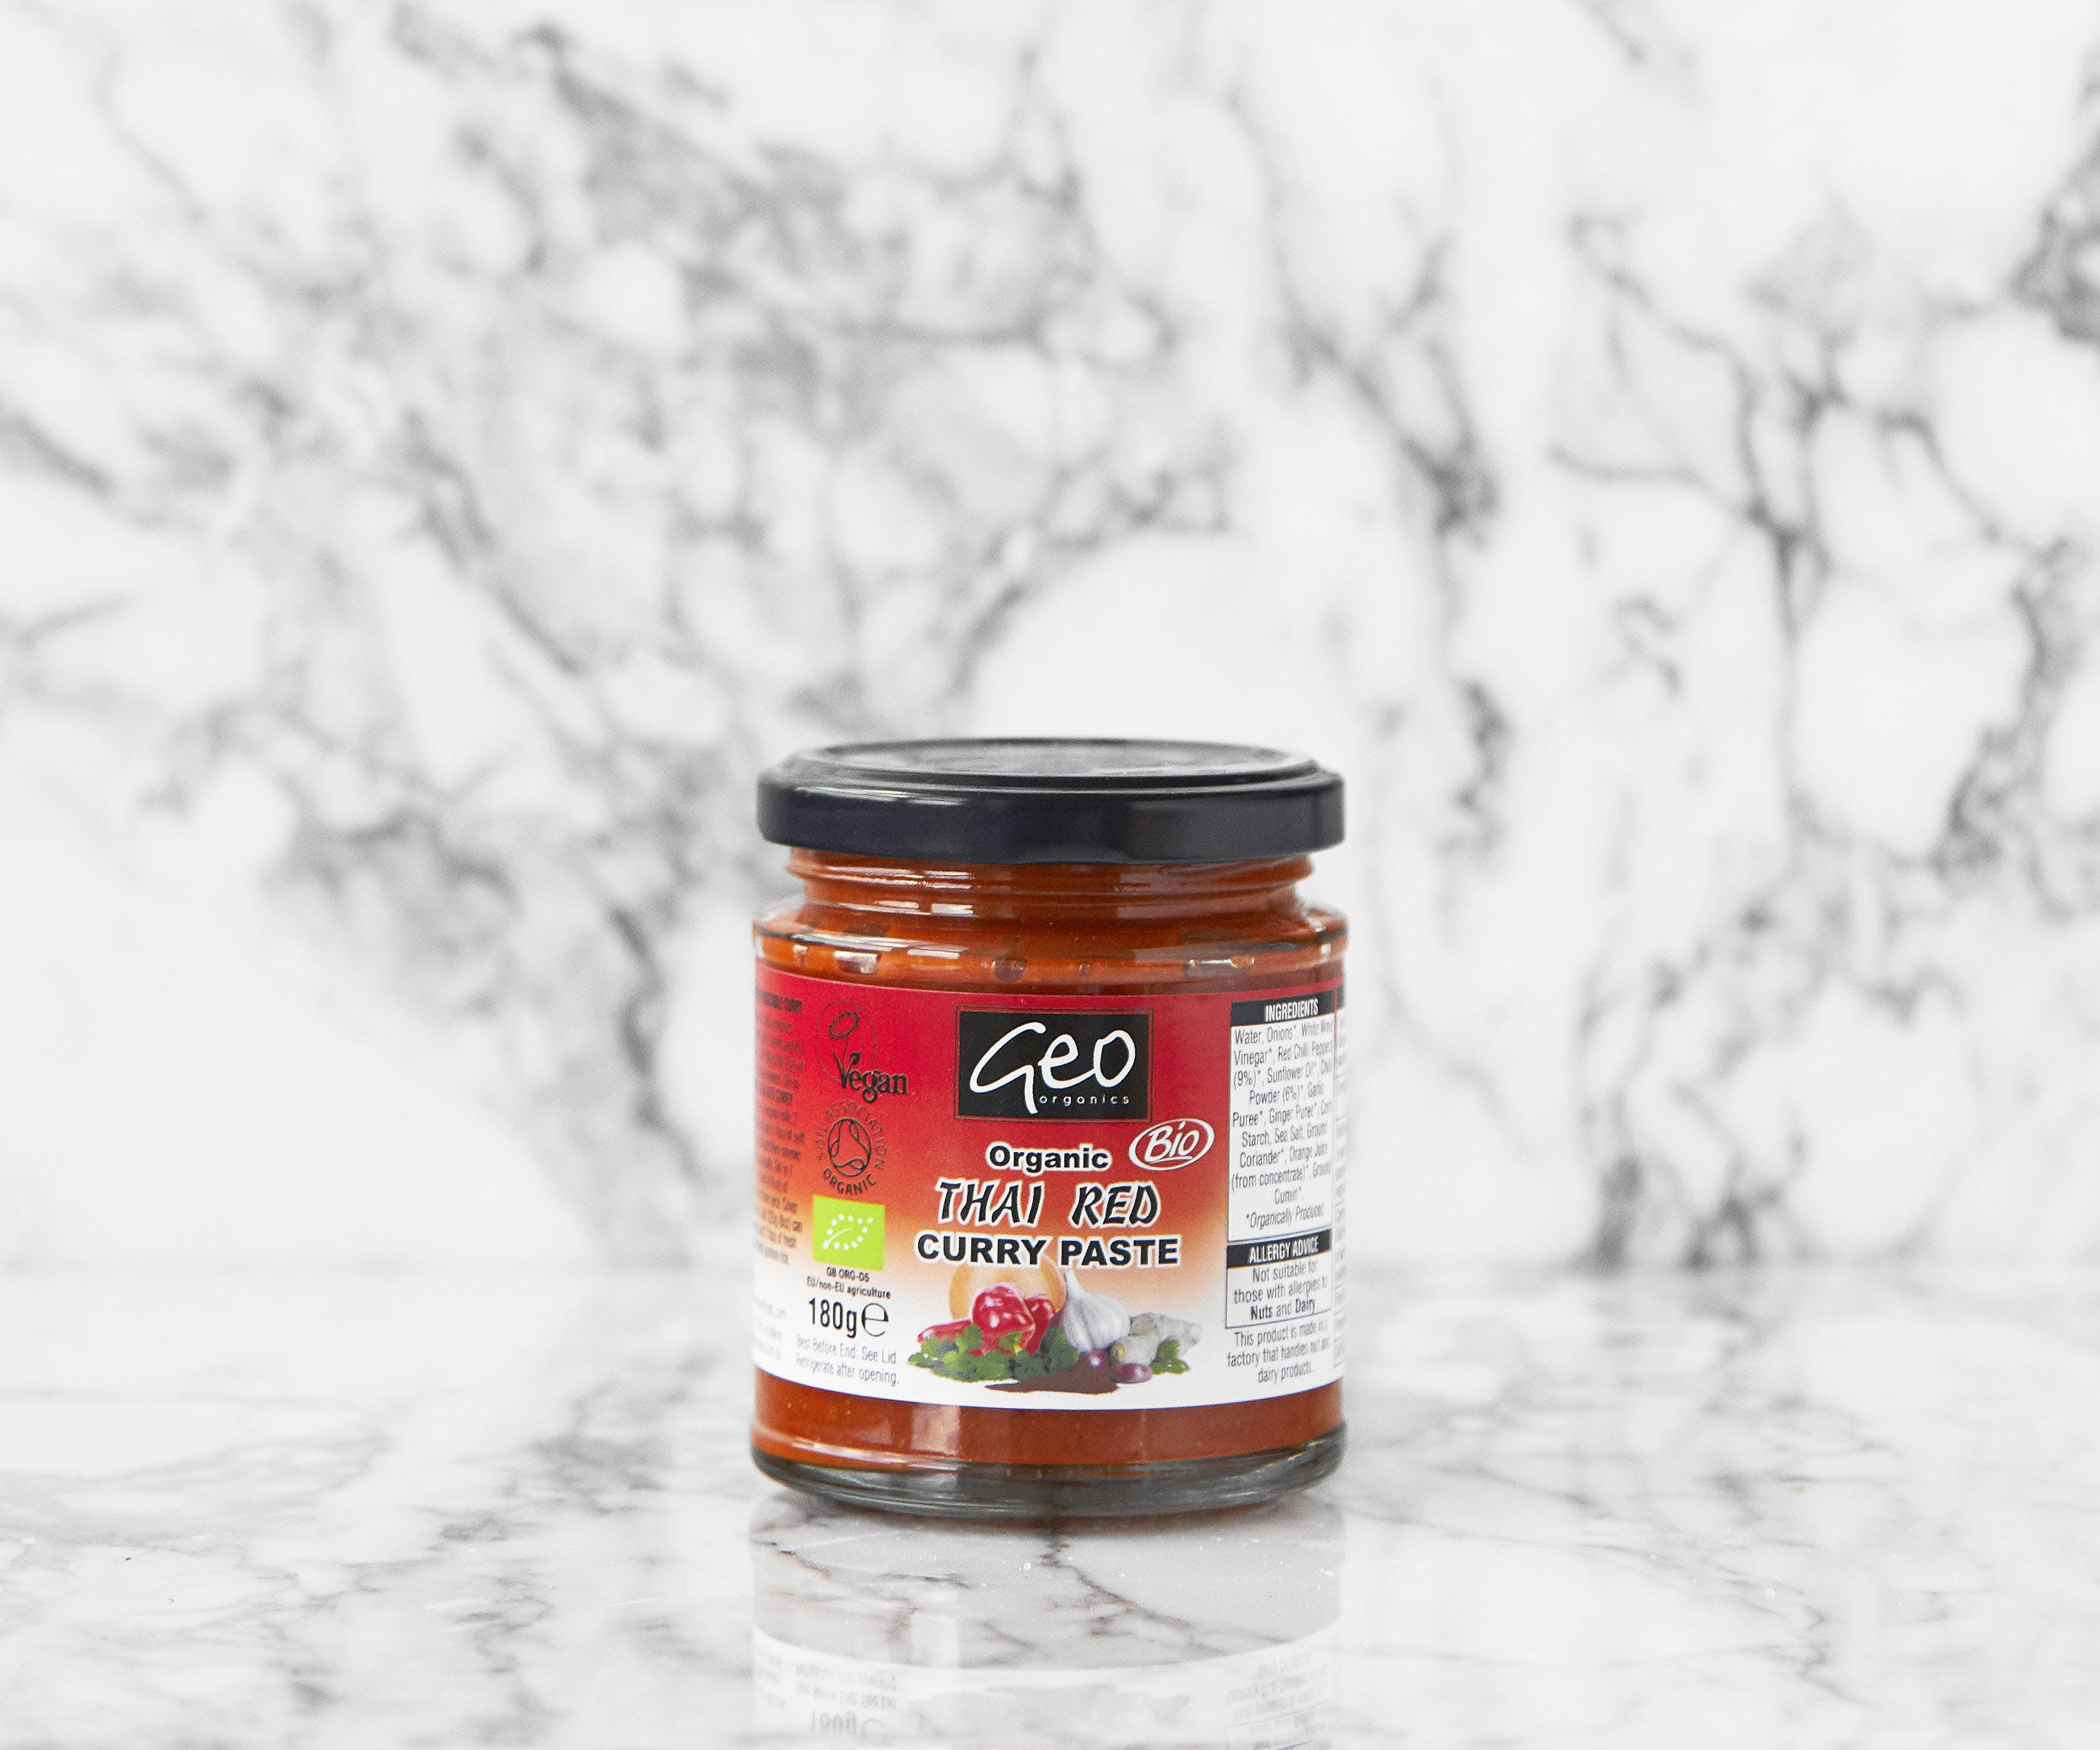 Geo Organics Thai Red Curry Paste